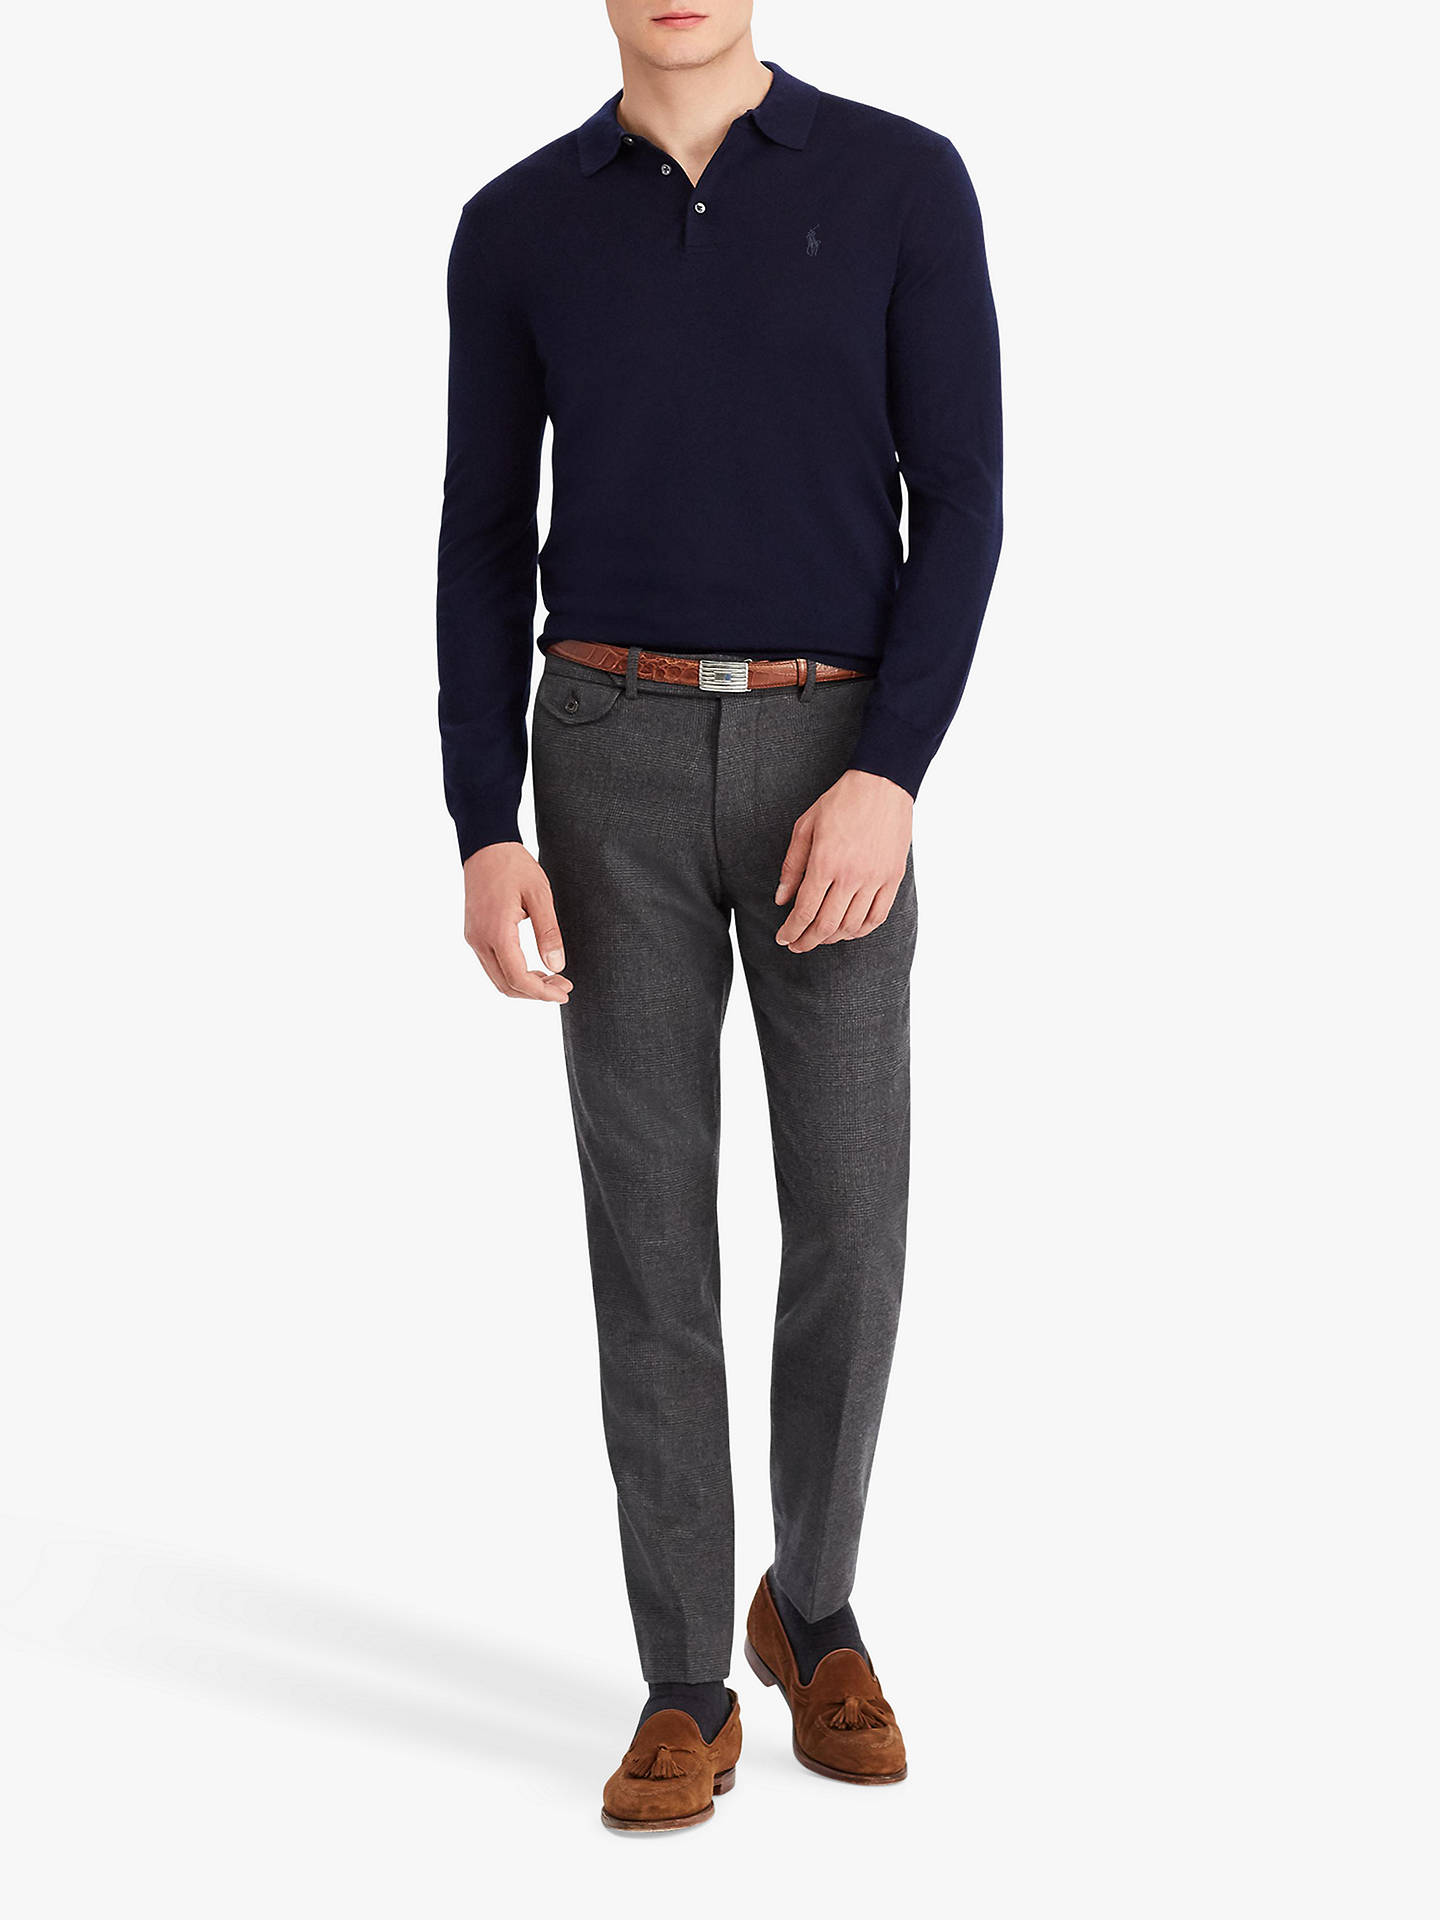 BuyPolo Ralph Lauren Long Sleeve Knitted Polo Shirt, Hunter Navy, M Online at johnlewis.com